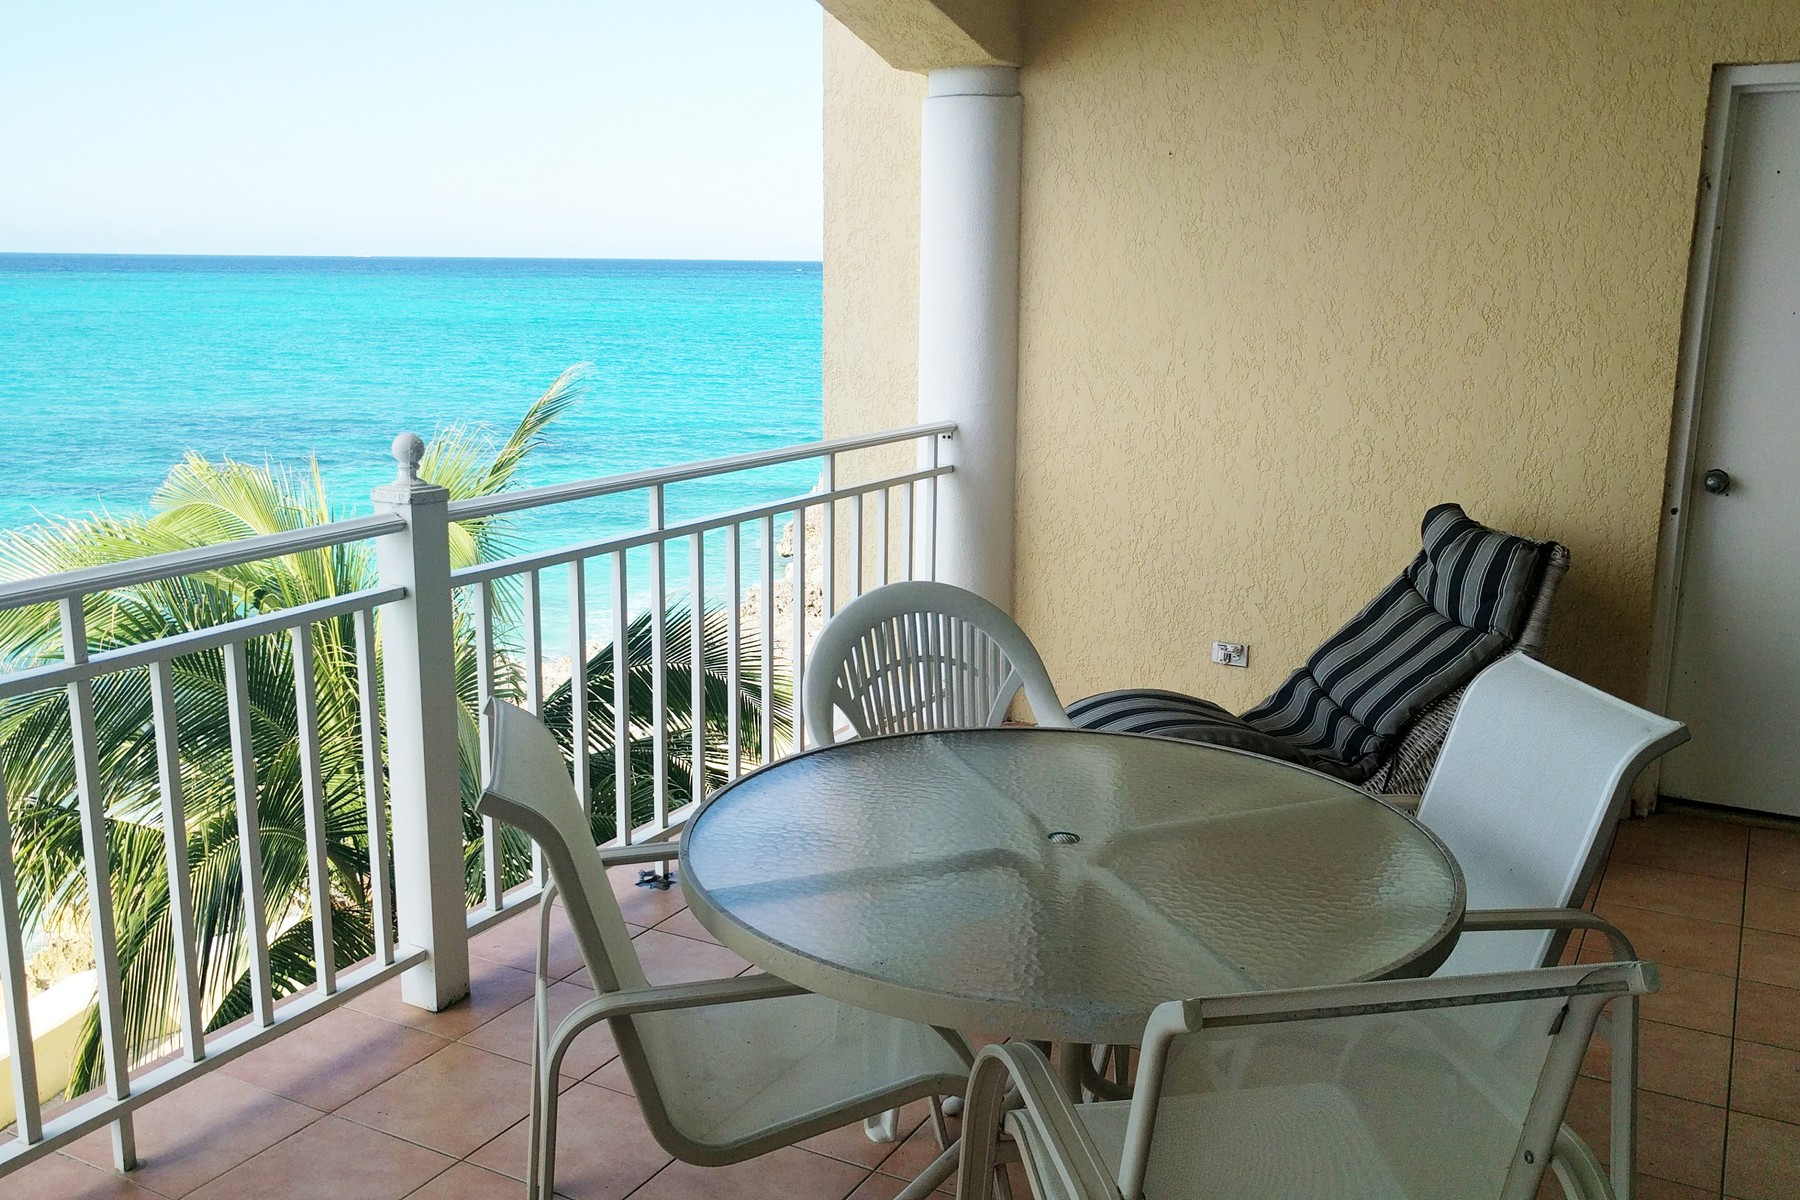 Additional photo for property listing at 8C Caves Point Caves Point, West Bay Street, Nassau And Paradise Island Bahamas